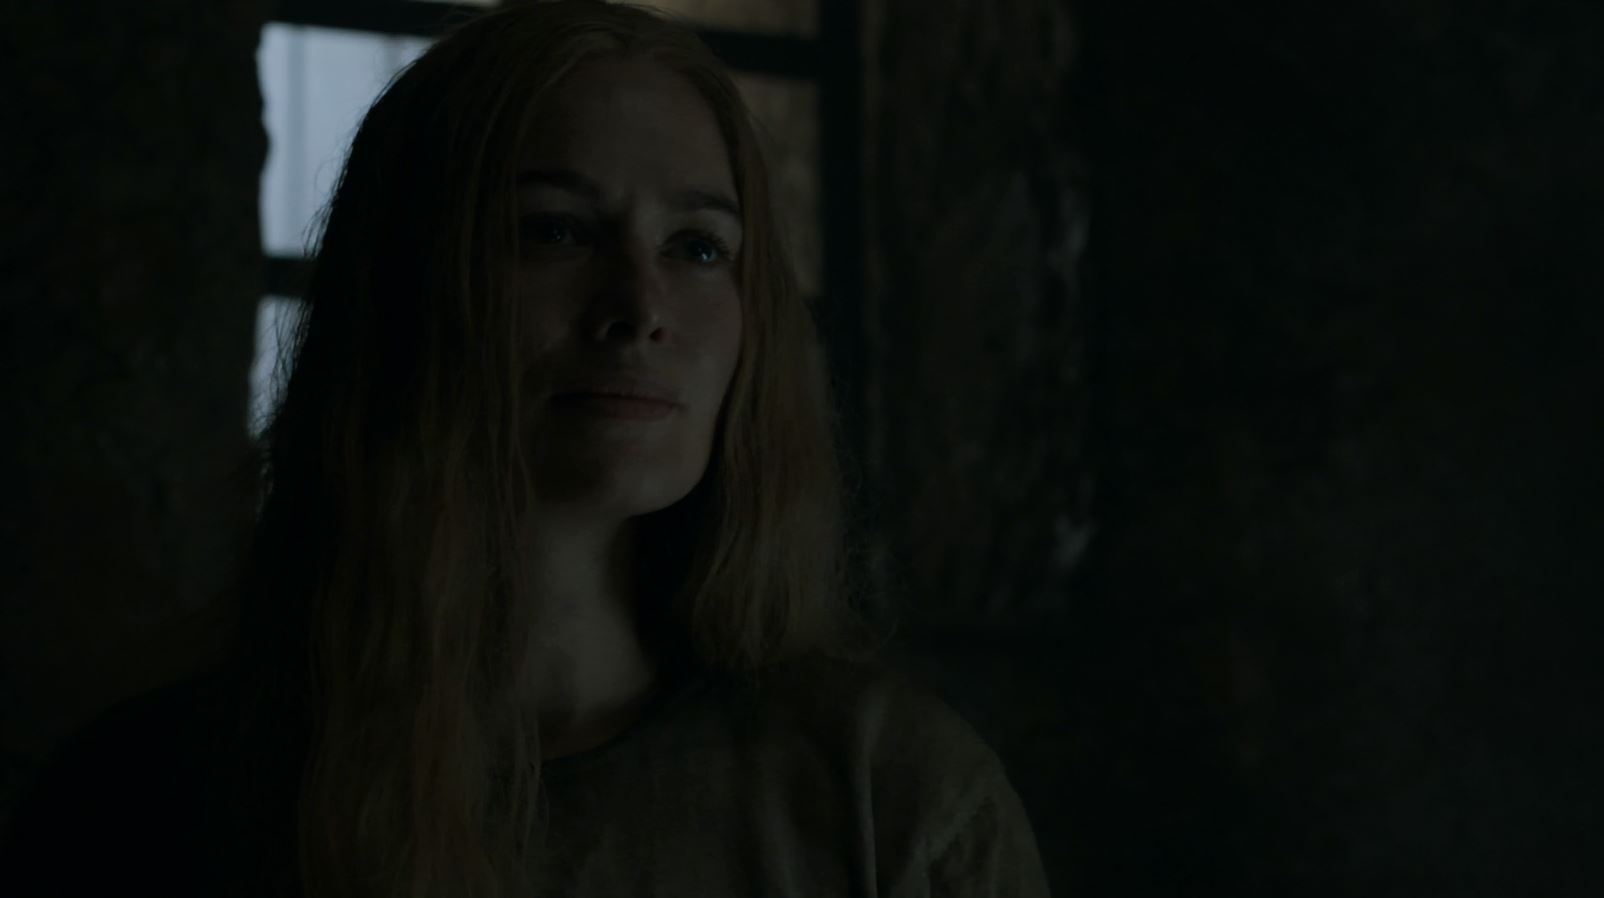 Cersei in prison (Lena Headey). Game of Thrones S5Ep8 Hardhome Review